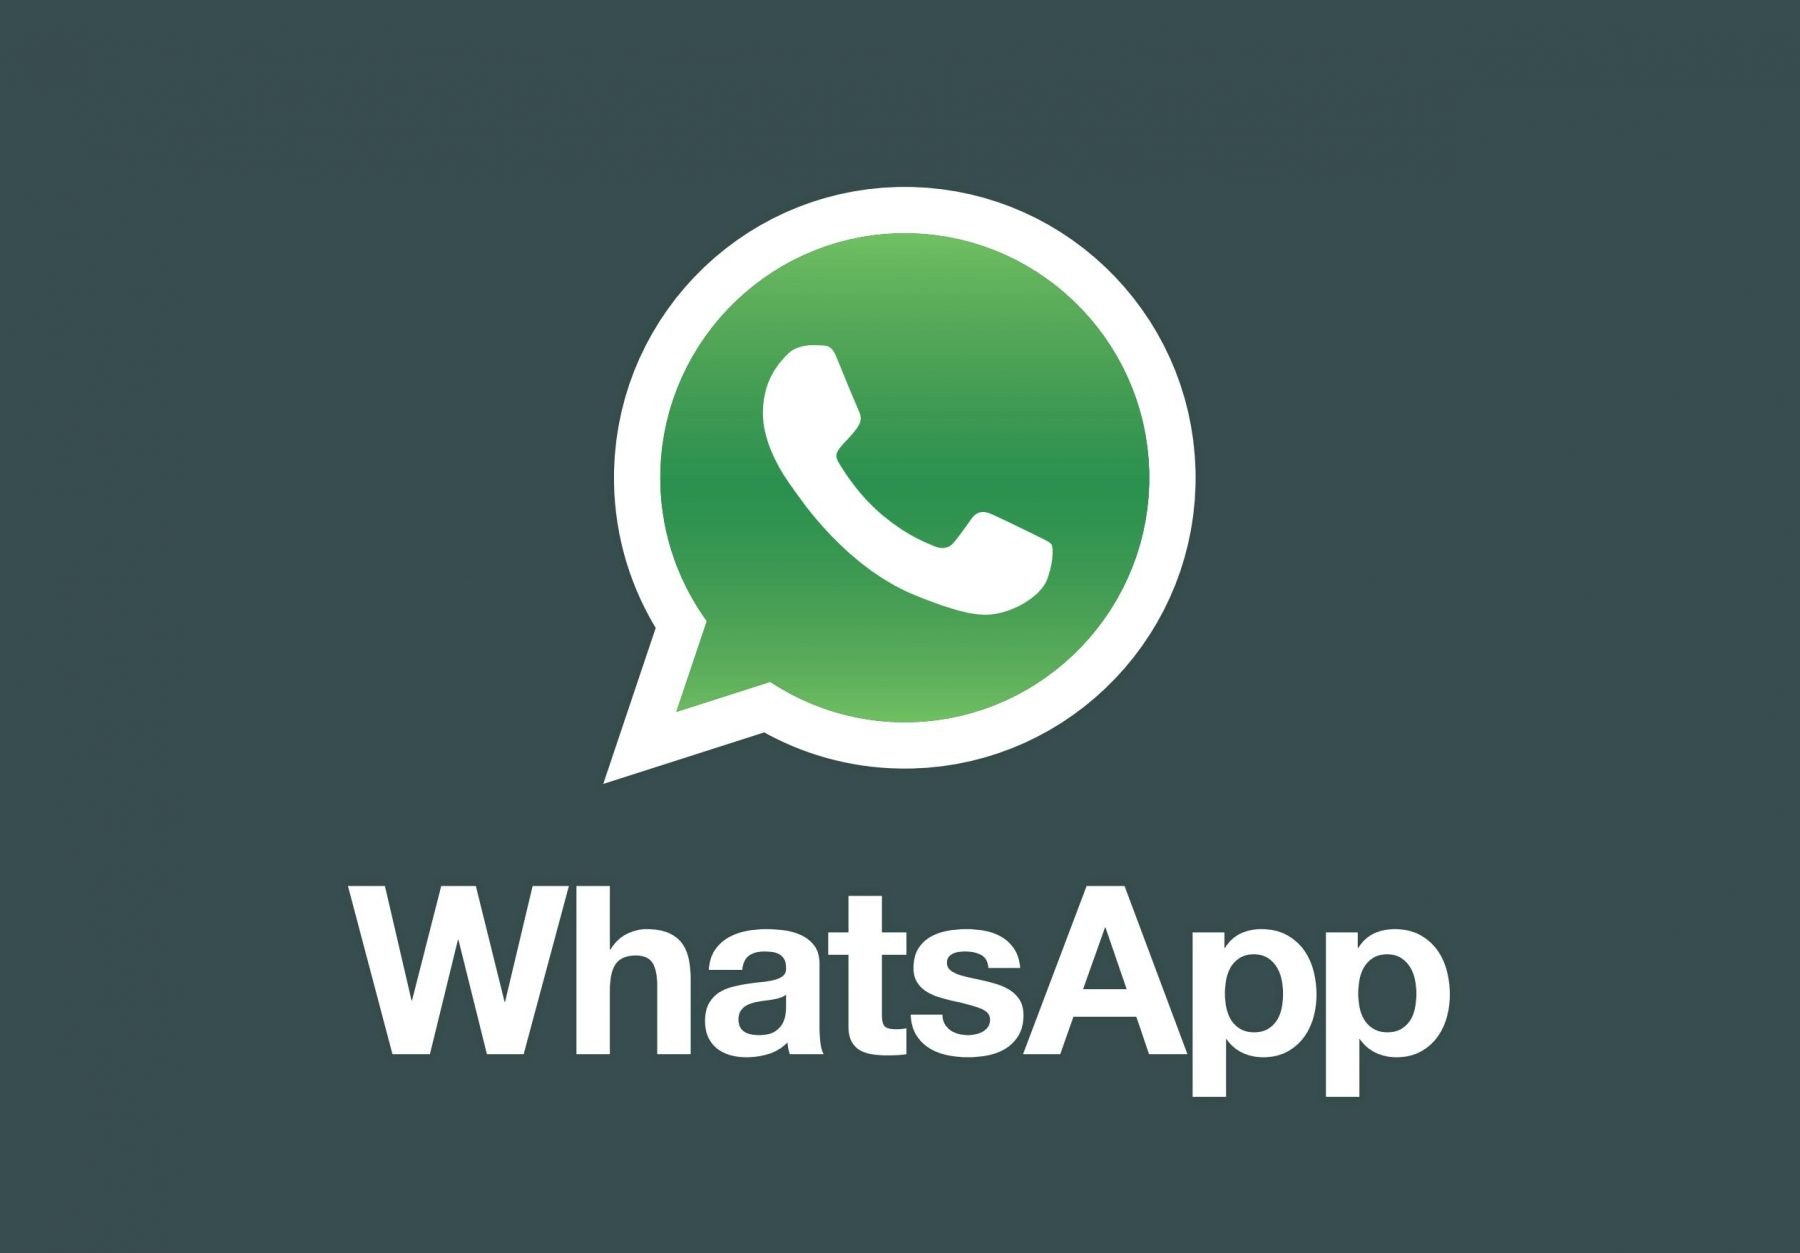 WhatsApp Messenger 2.16.232 Beta launched